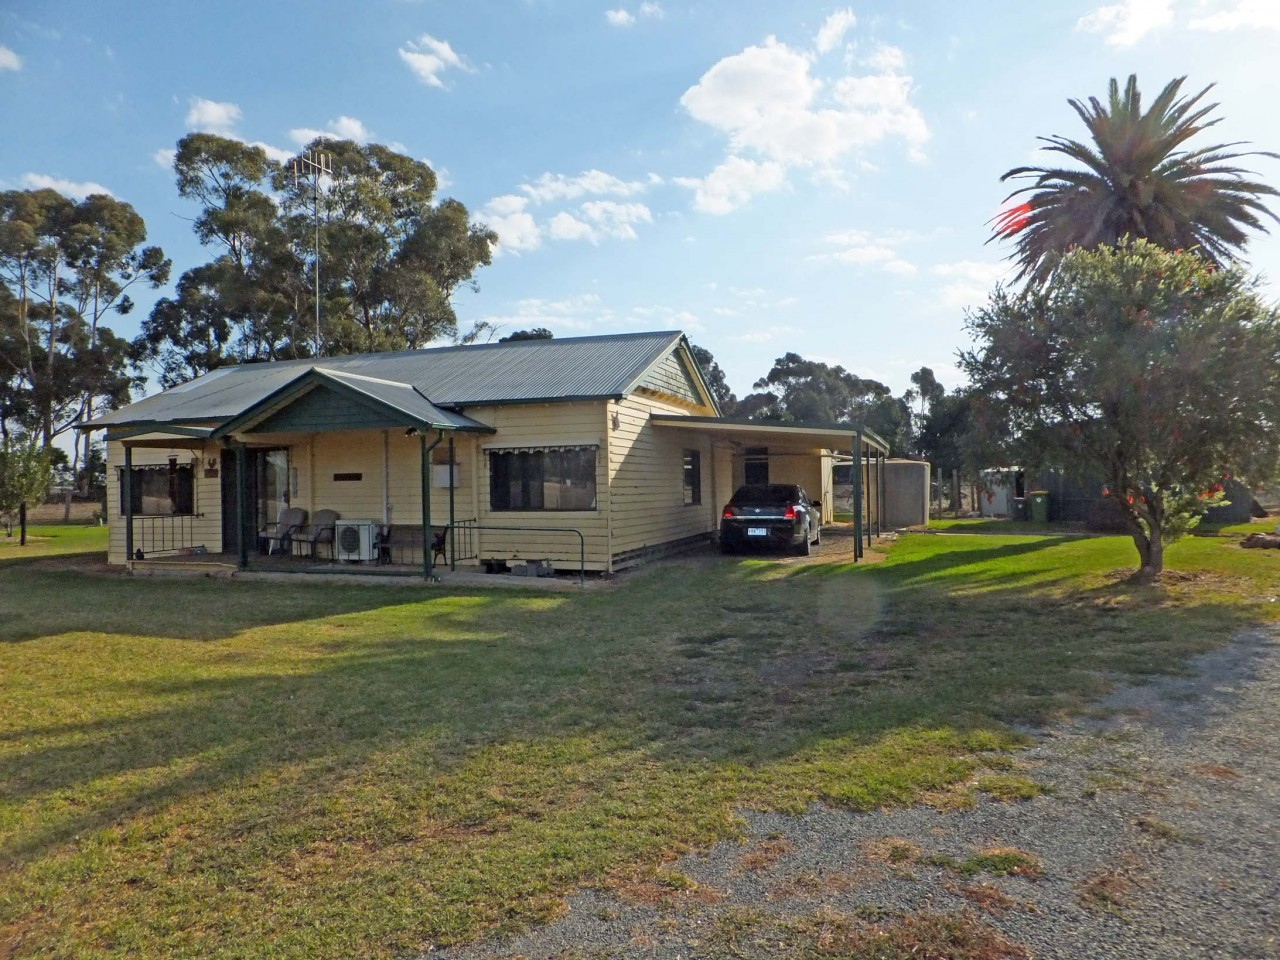 Farm for Sale - 68 Shaw Road, Stanhope, VIC - Farm Property